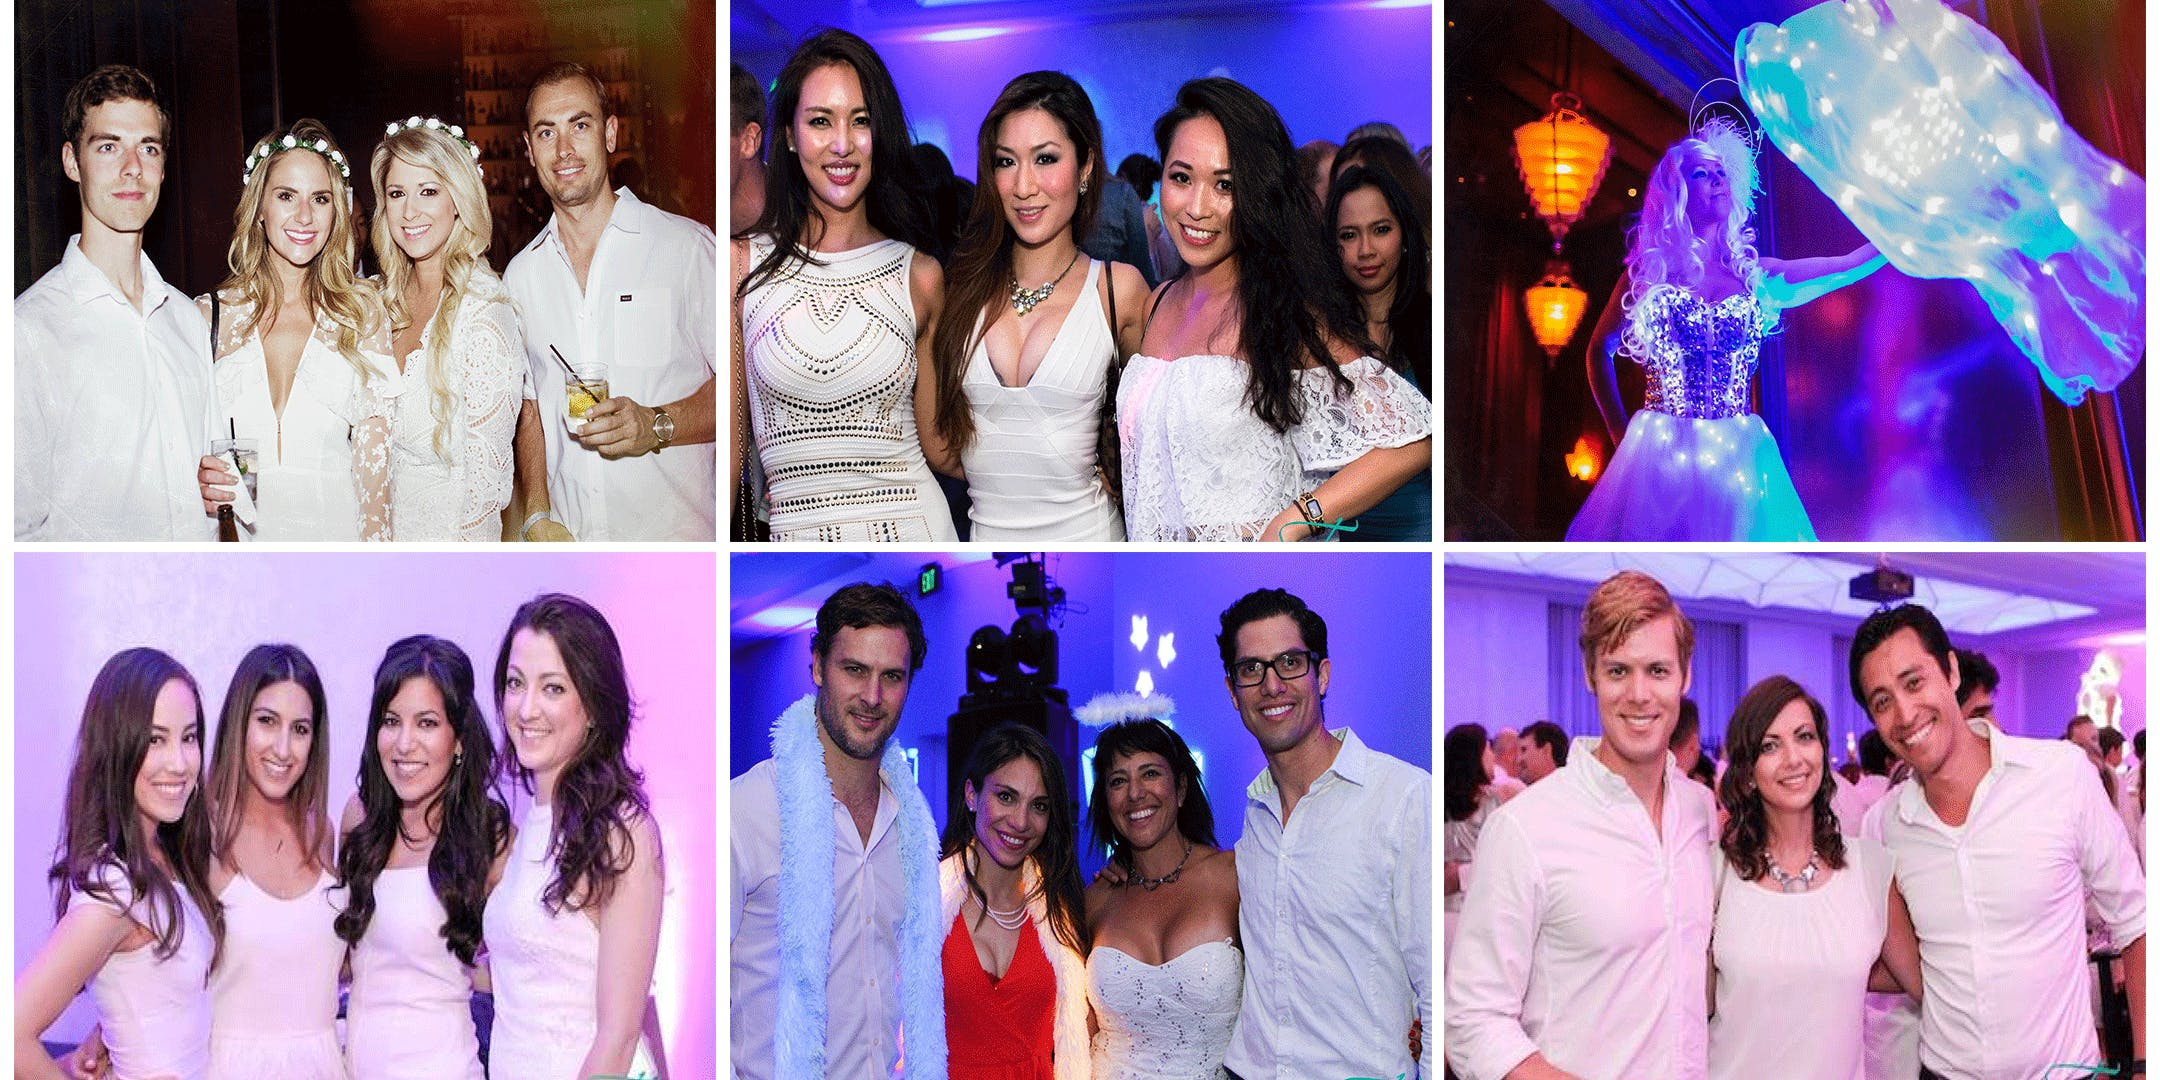 GoodPeople: 6th Annual White Party - Celebrat